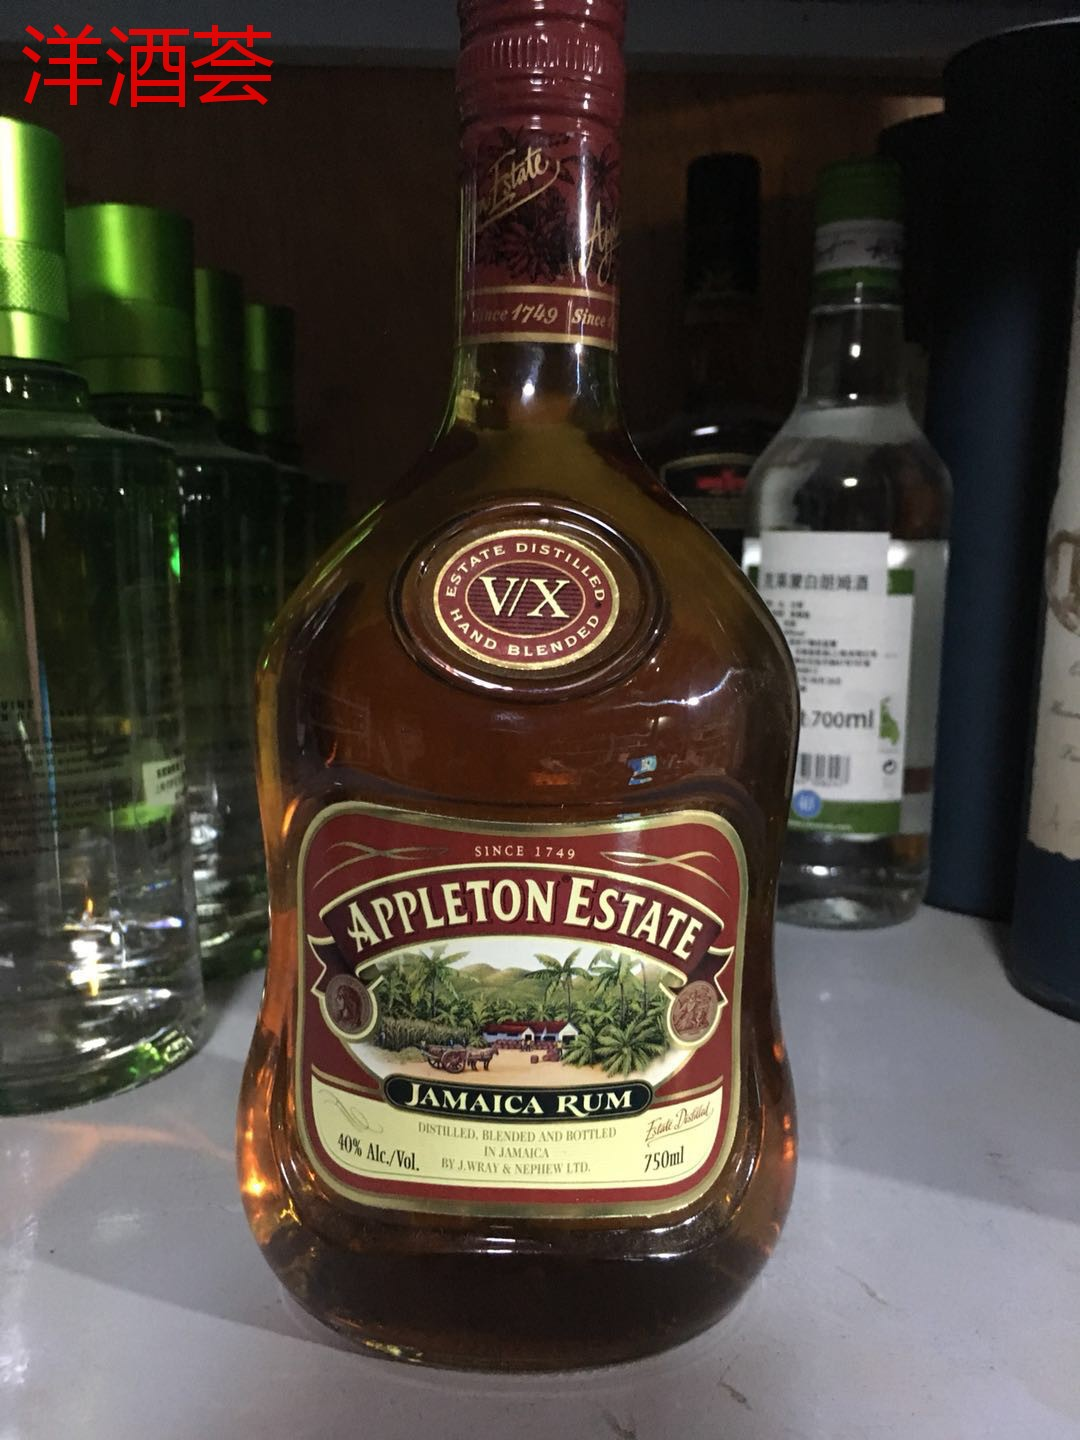 Appleton Estate Jamaica Rum 阿普���D�f�@ 特�x朗姆酒正品